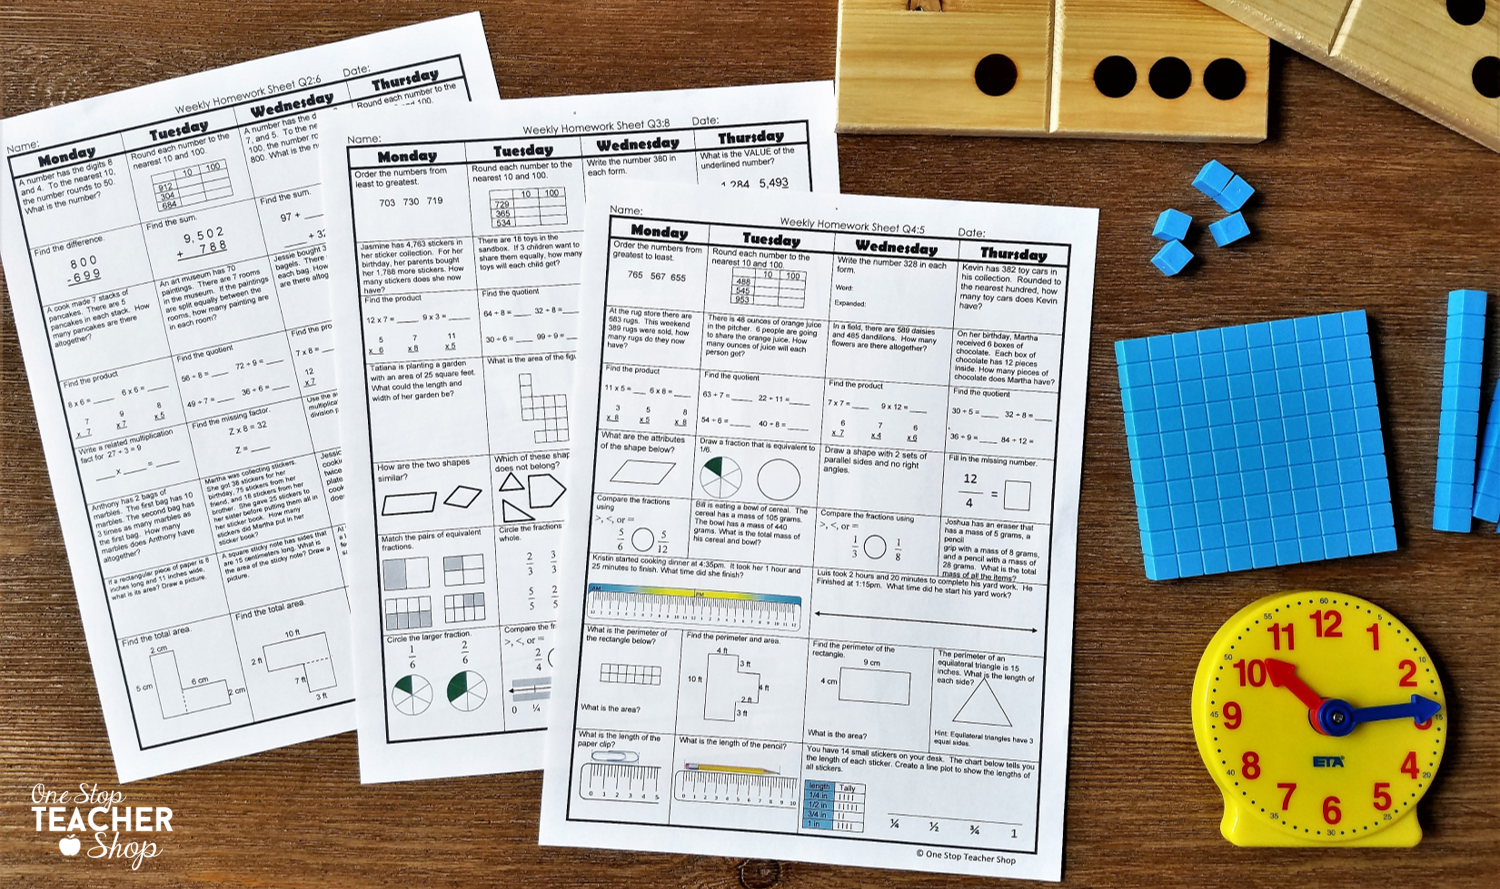 Spiral math homework is by far the most effective homework system I have ever used. Get tips and ideas for implementing spiral homework in your classroom, and read about the benefits I've seen in my classroom. (Number 4 has been a HUGE game changer)